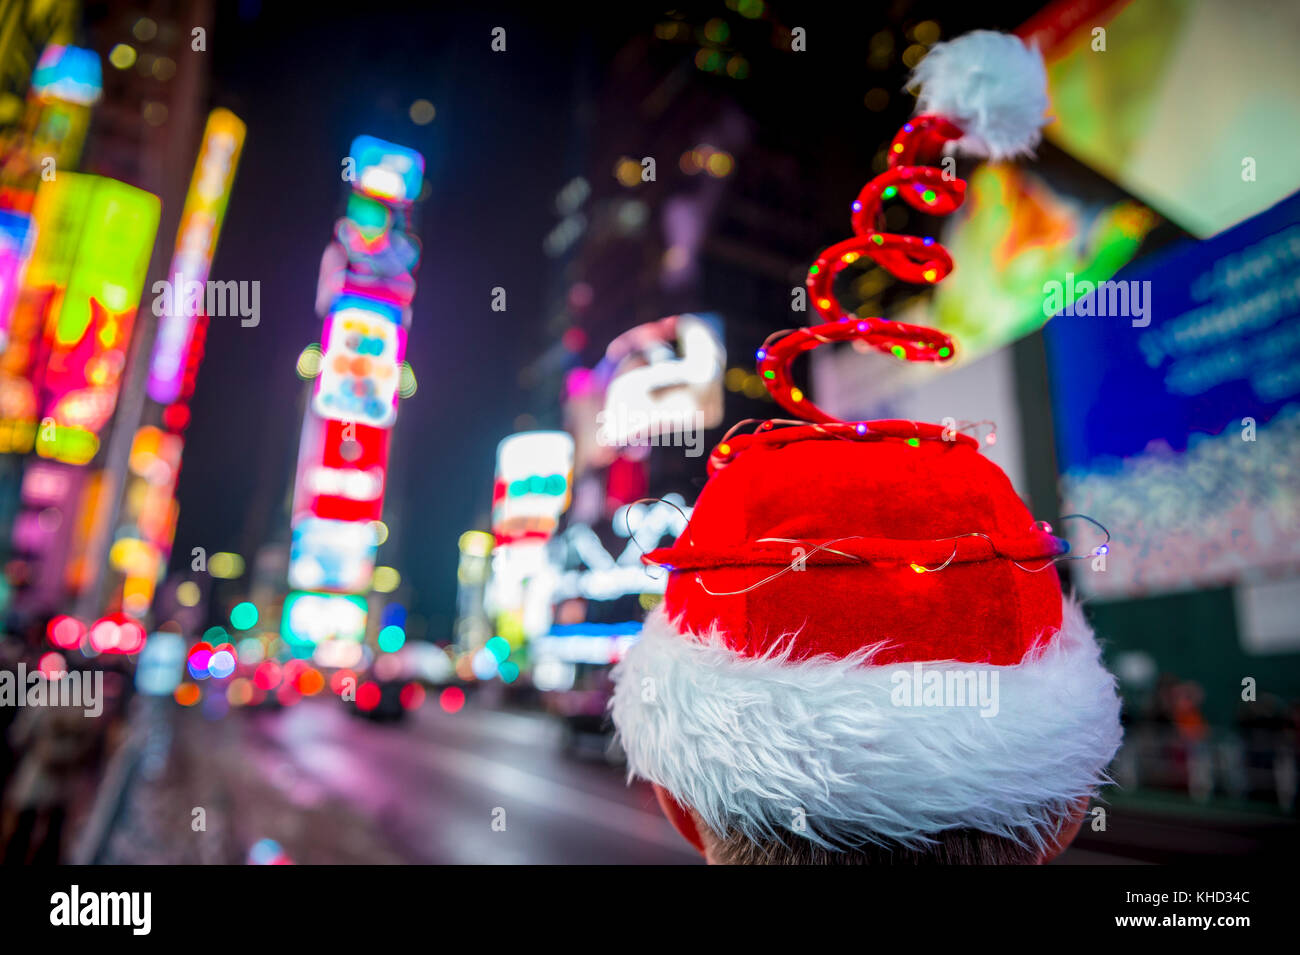 Santa hat with colorful Christmas lights in Times Square, New York City - Stock Image